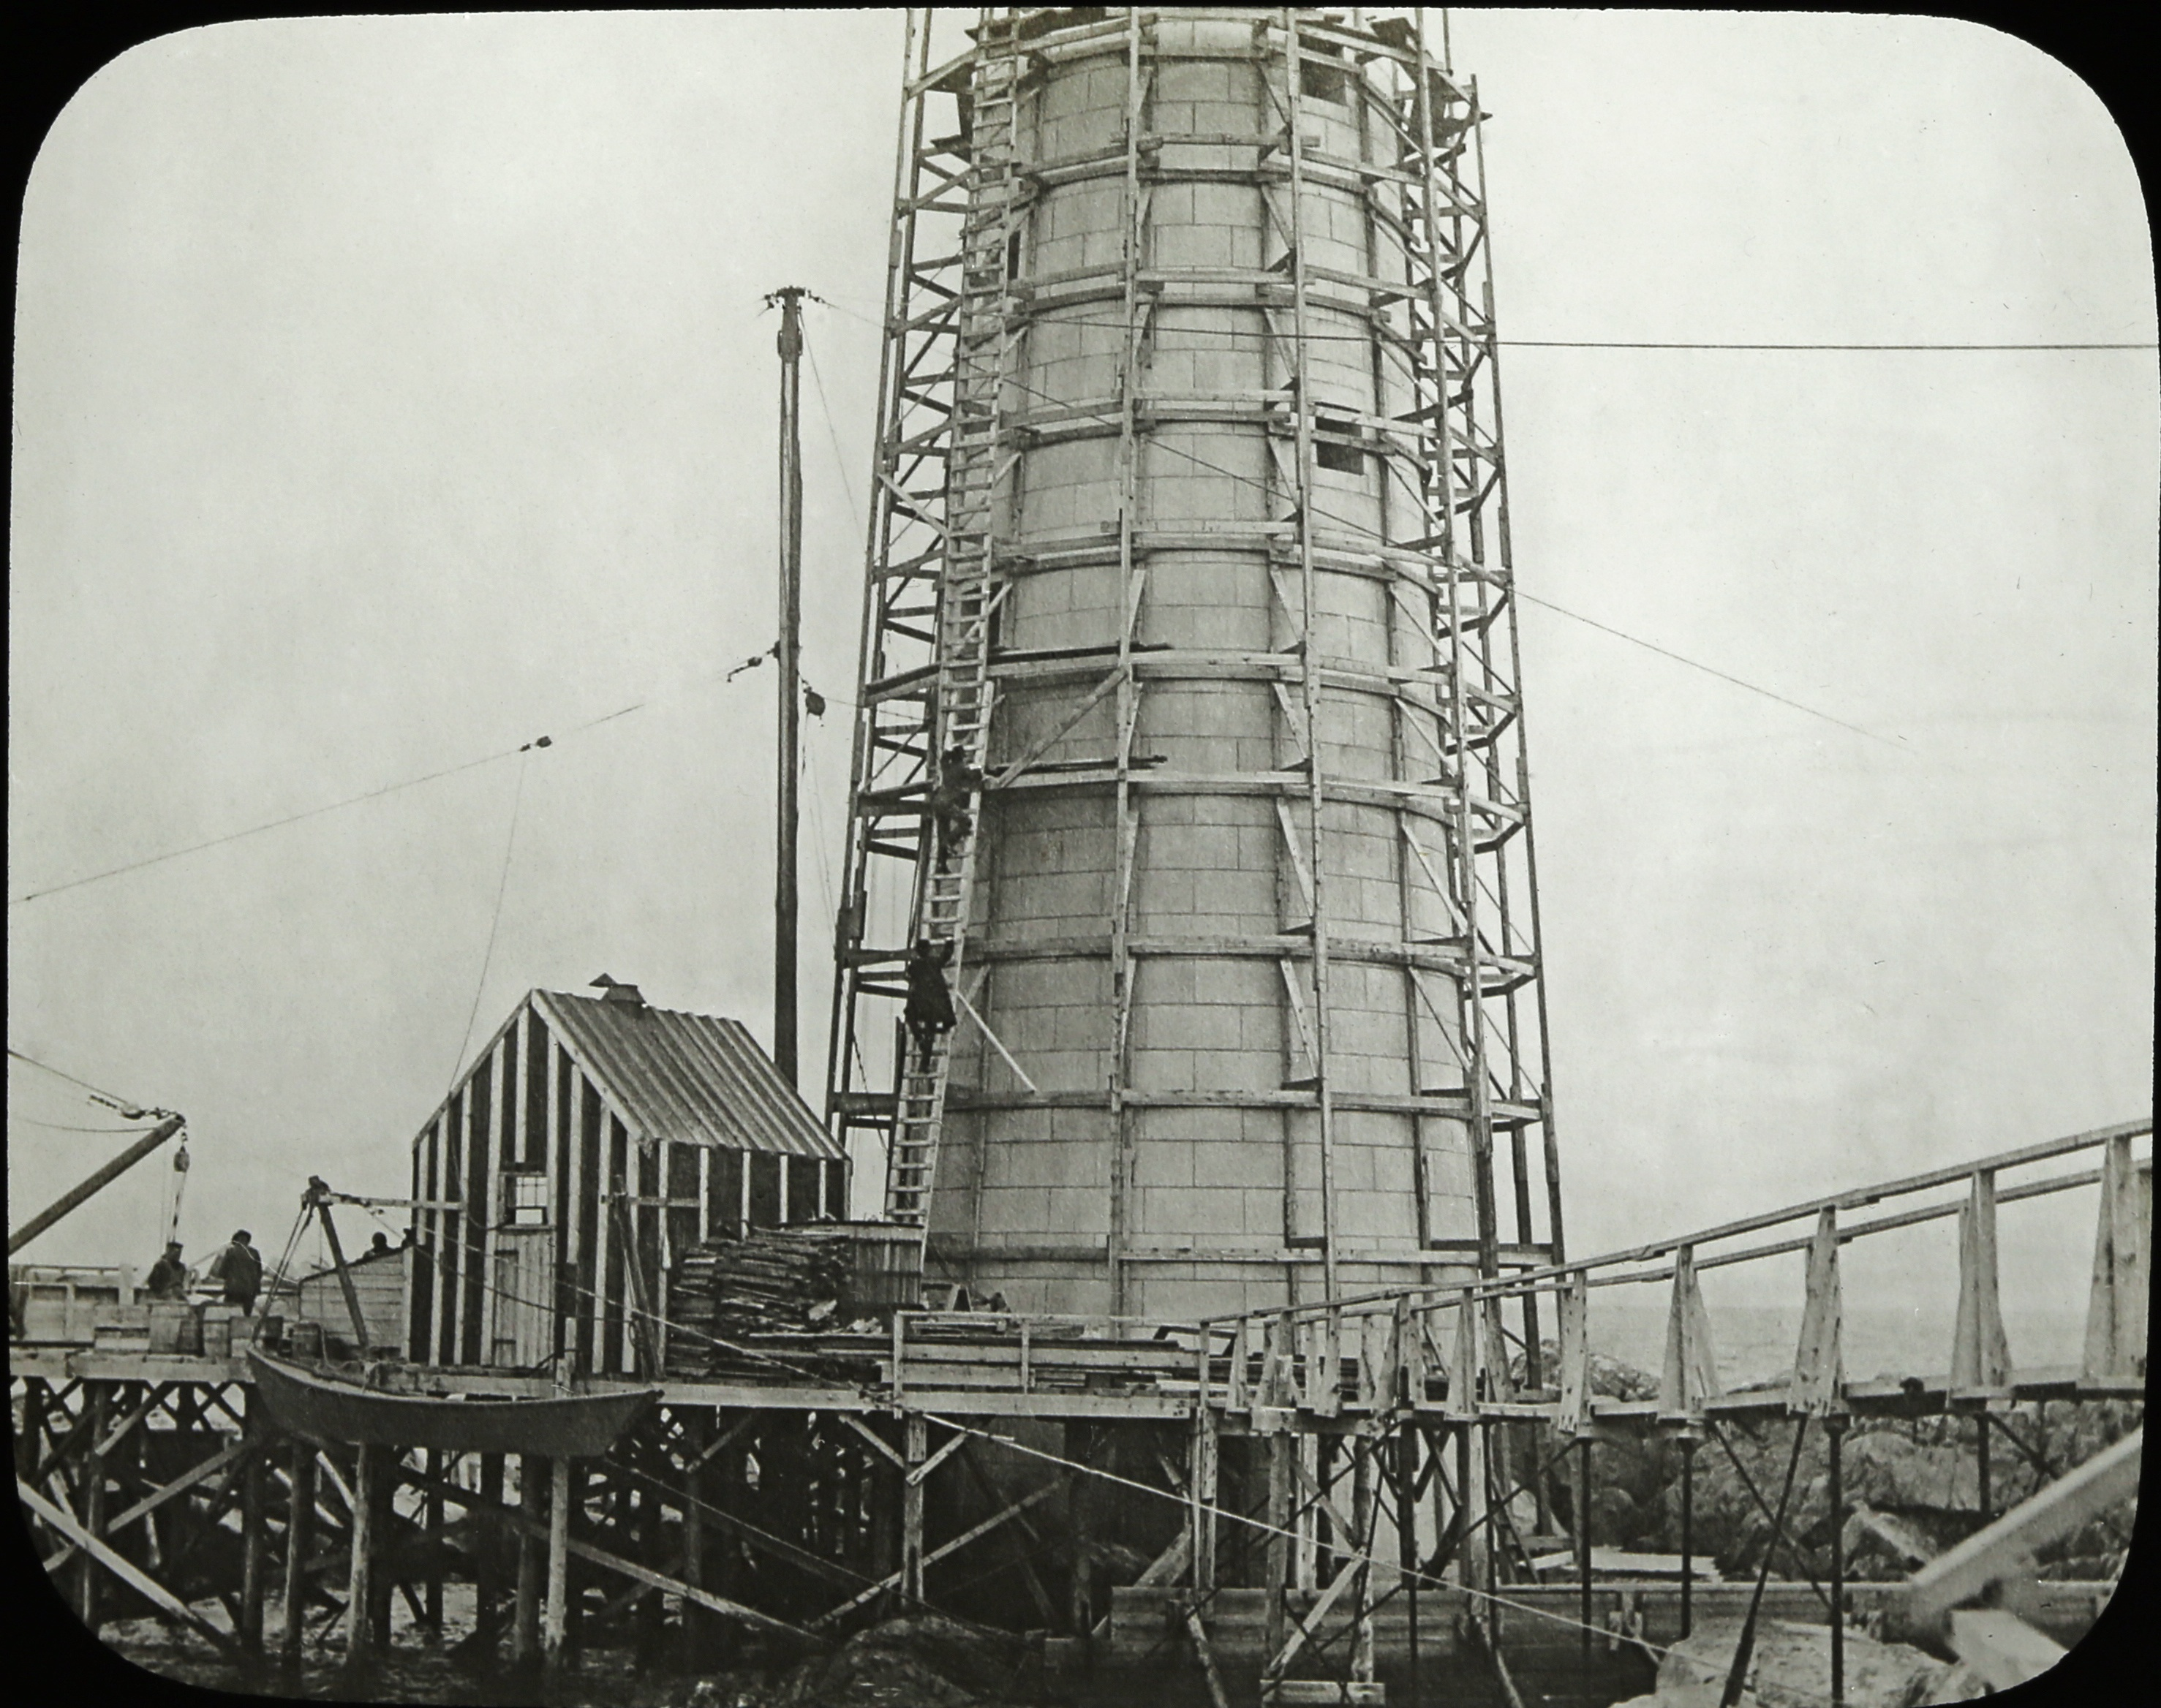 Wooden scaffolding surrounds the new tower as the builders proceed in 1904. Some of the construction shanties apparently remained for a few years after completion. (Photo courtesy of the Massachusetts Historical Society)